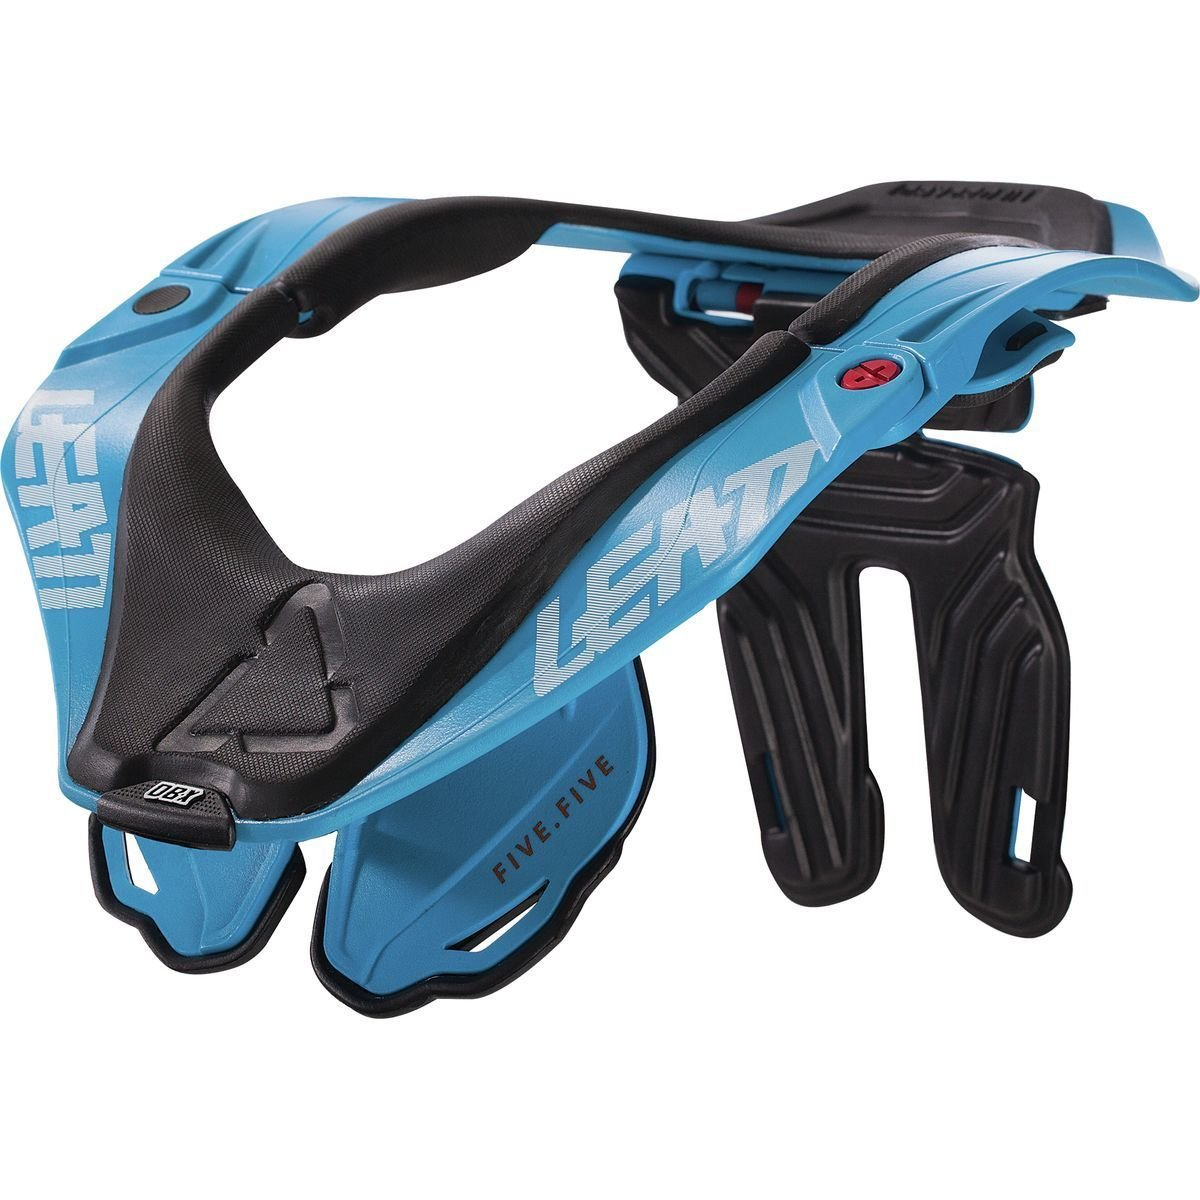 Leatt Blue Small/Medium Neck Brace GPX,5 Pack